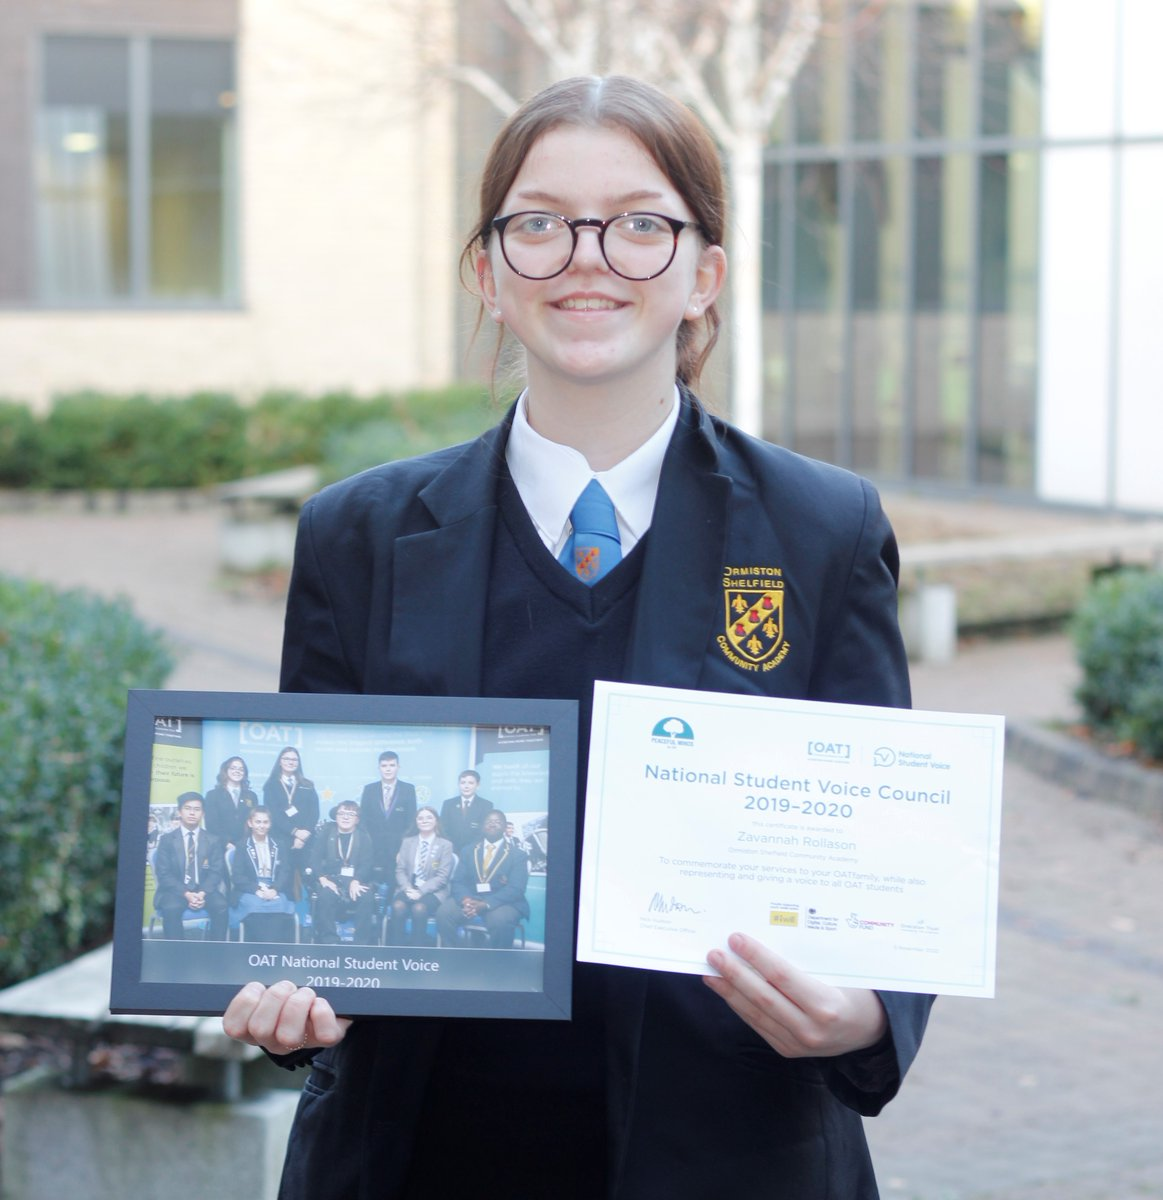 Another of our National Student Voice, Zavannah from @ShelfieldCA.💛 Working on an #iwill project to eradicate stigma & promote wellbeing for all OAT students, Zvannah really showed a passion for giving all of her peers a voice!  #iwillfund #iwillormiston #PowerOfYouth #OATfamily